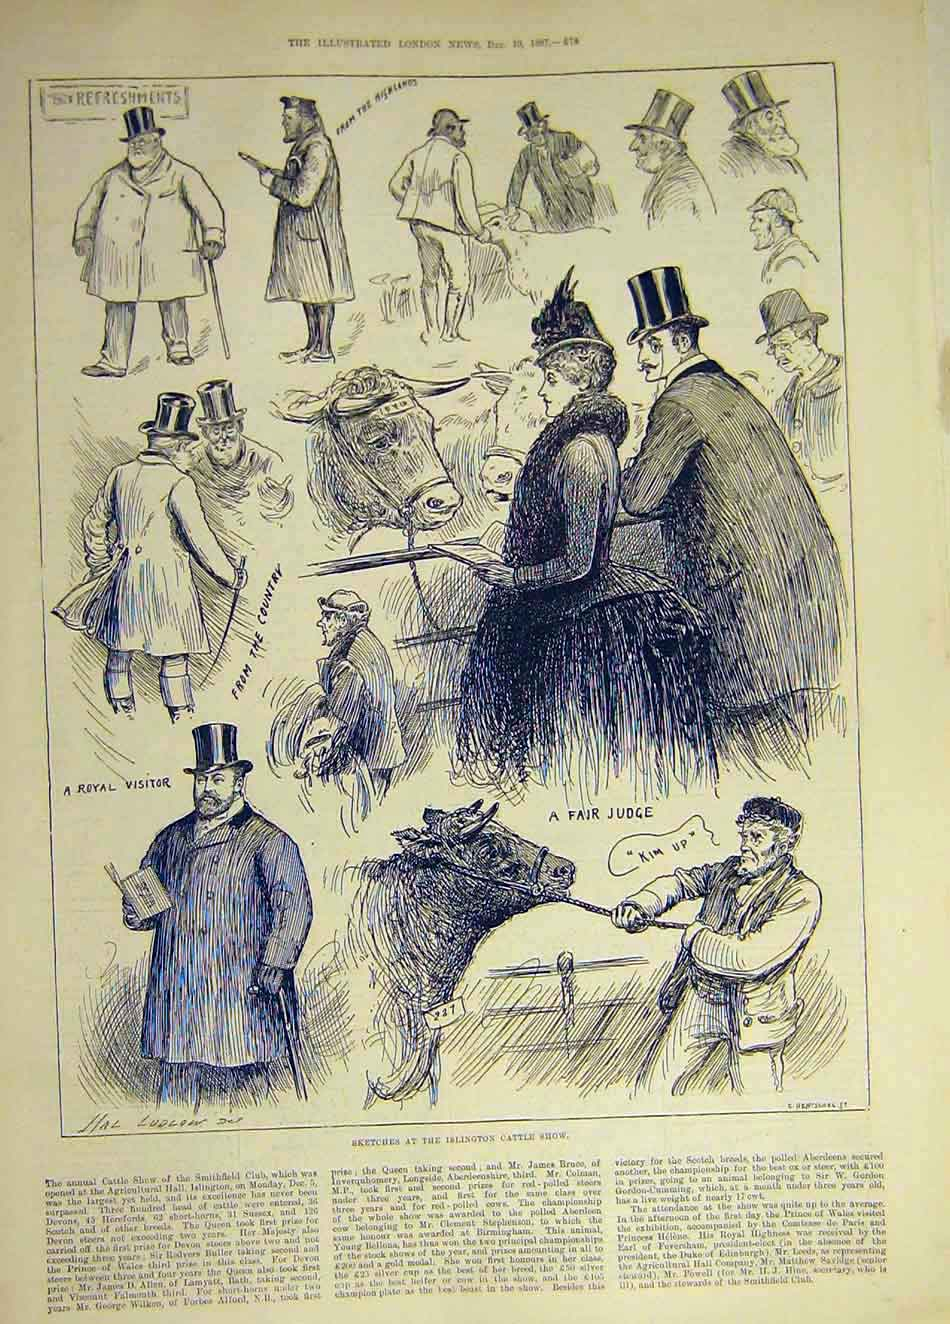 Print 1887 Sketches Islington Cattle Show Judge Visitor 187931 Old Original